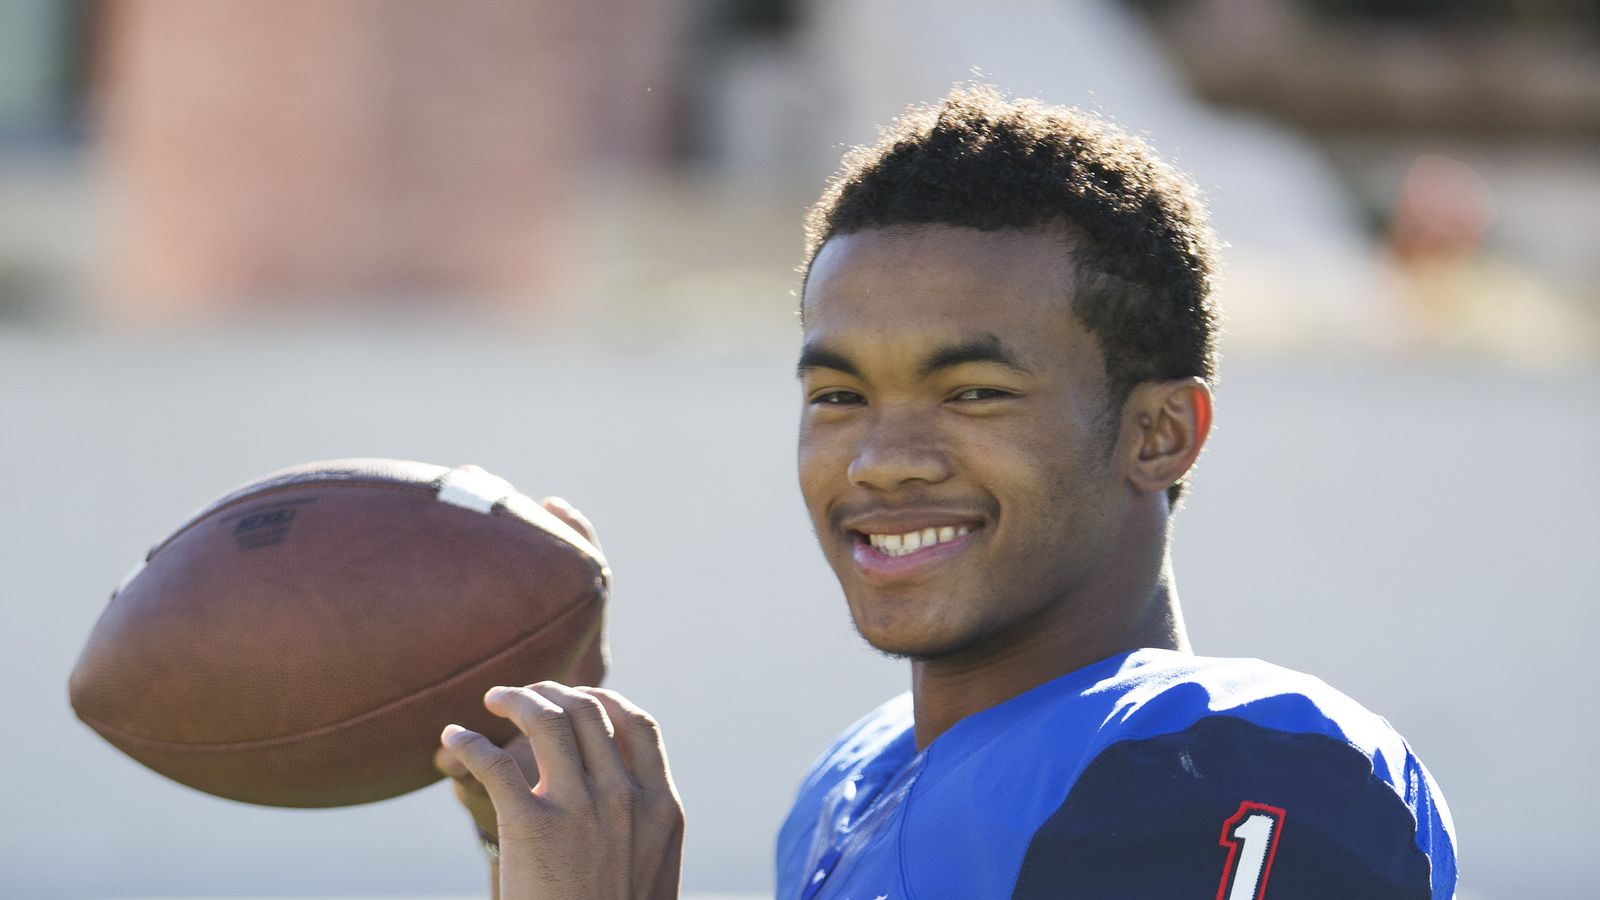 2015 Under Armour AllAmerica Game selectionKyler Murray is the son of former Texas AampM quarterback Kevin MurrayNamed the National Gatorade Player of the